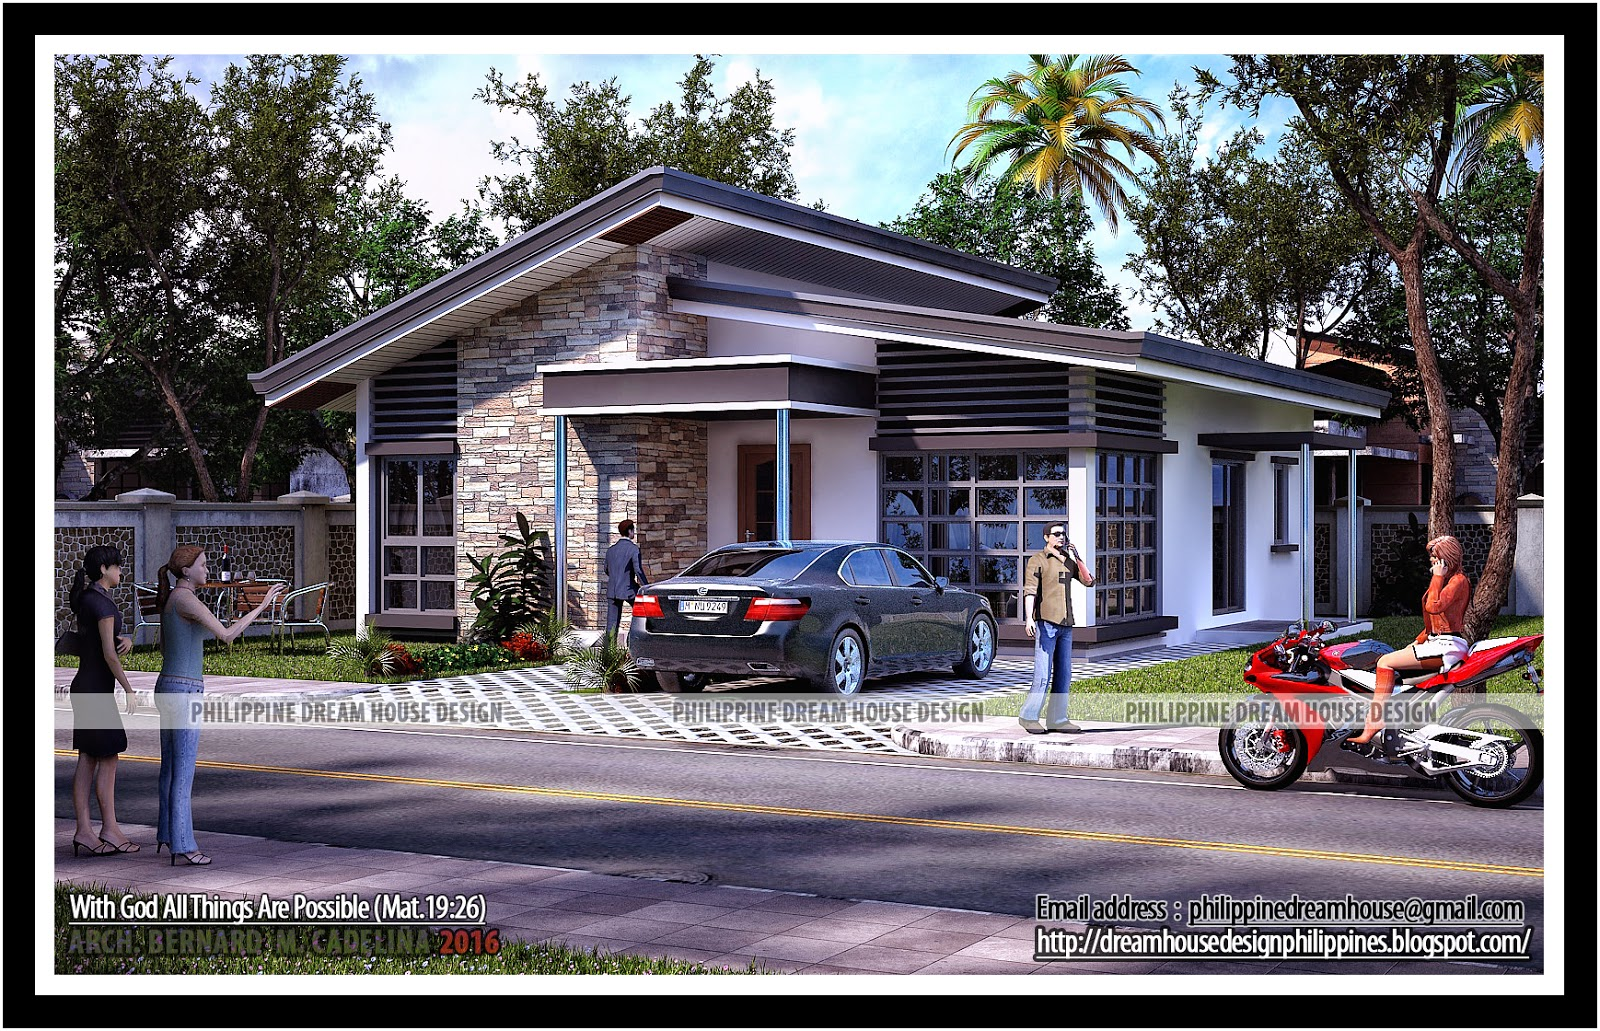 Philippine dream house design for Filipino small house design